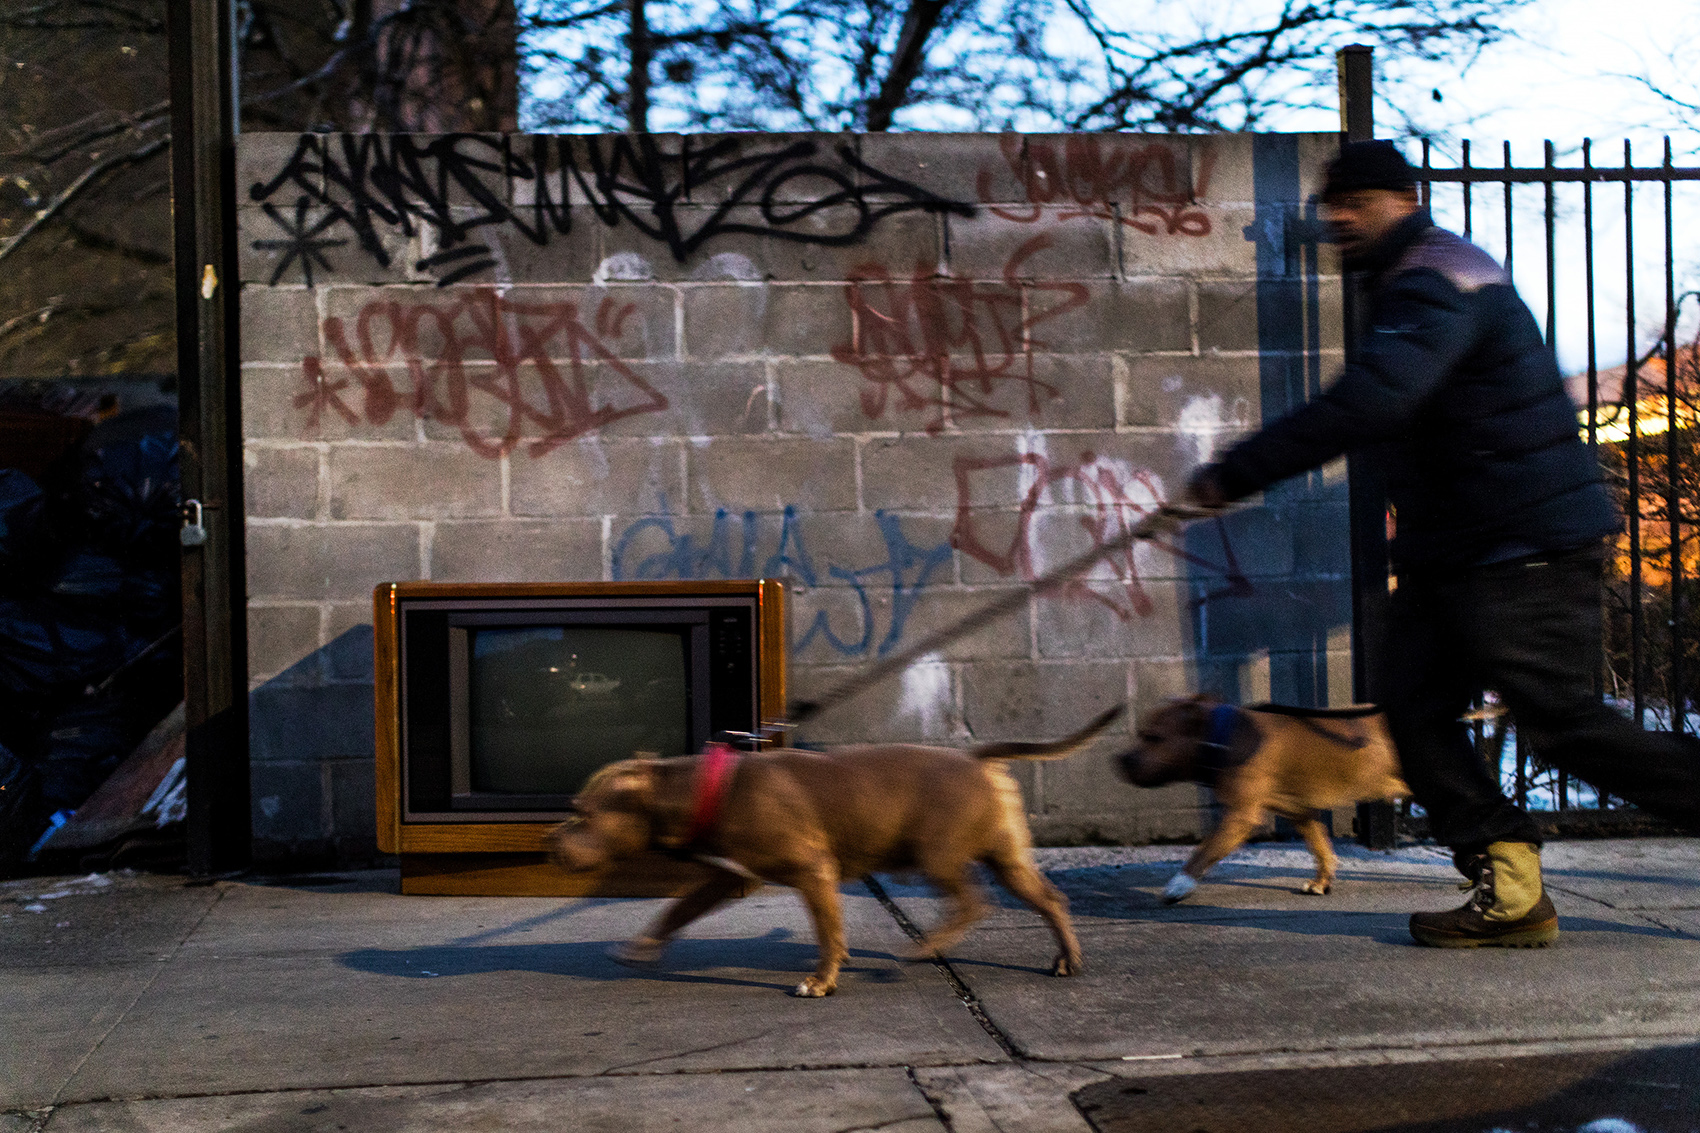 A man walks his dogs past the trash area outside of Ebbets Field Apartment complex in Brooklyn.